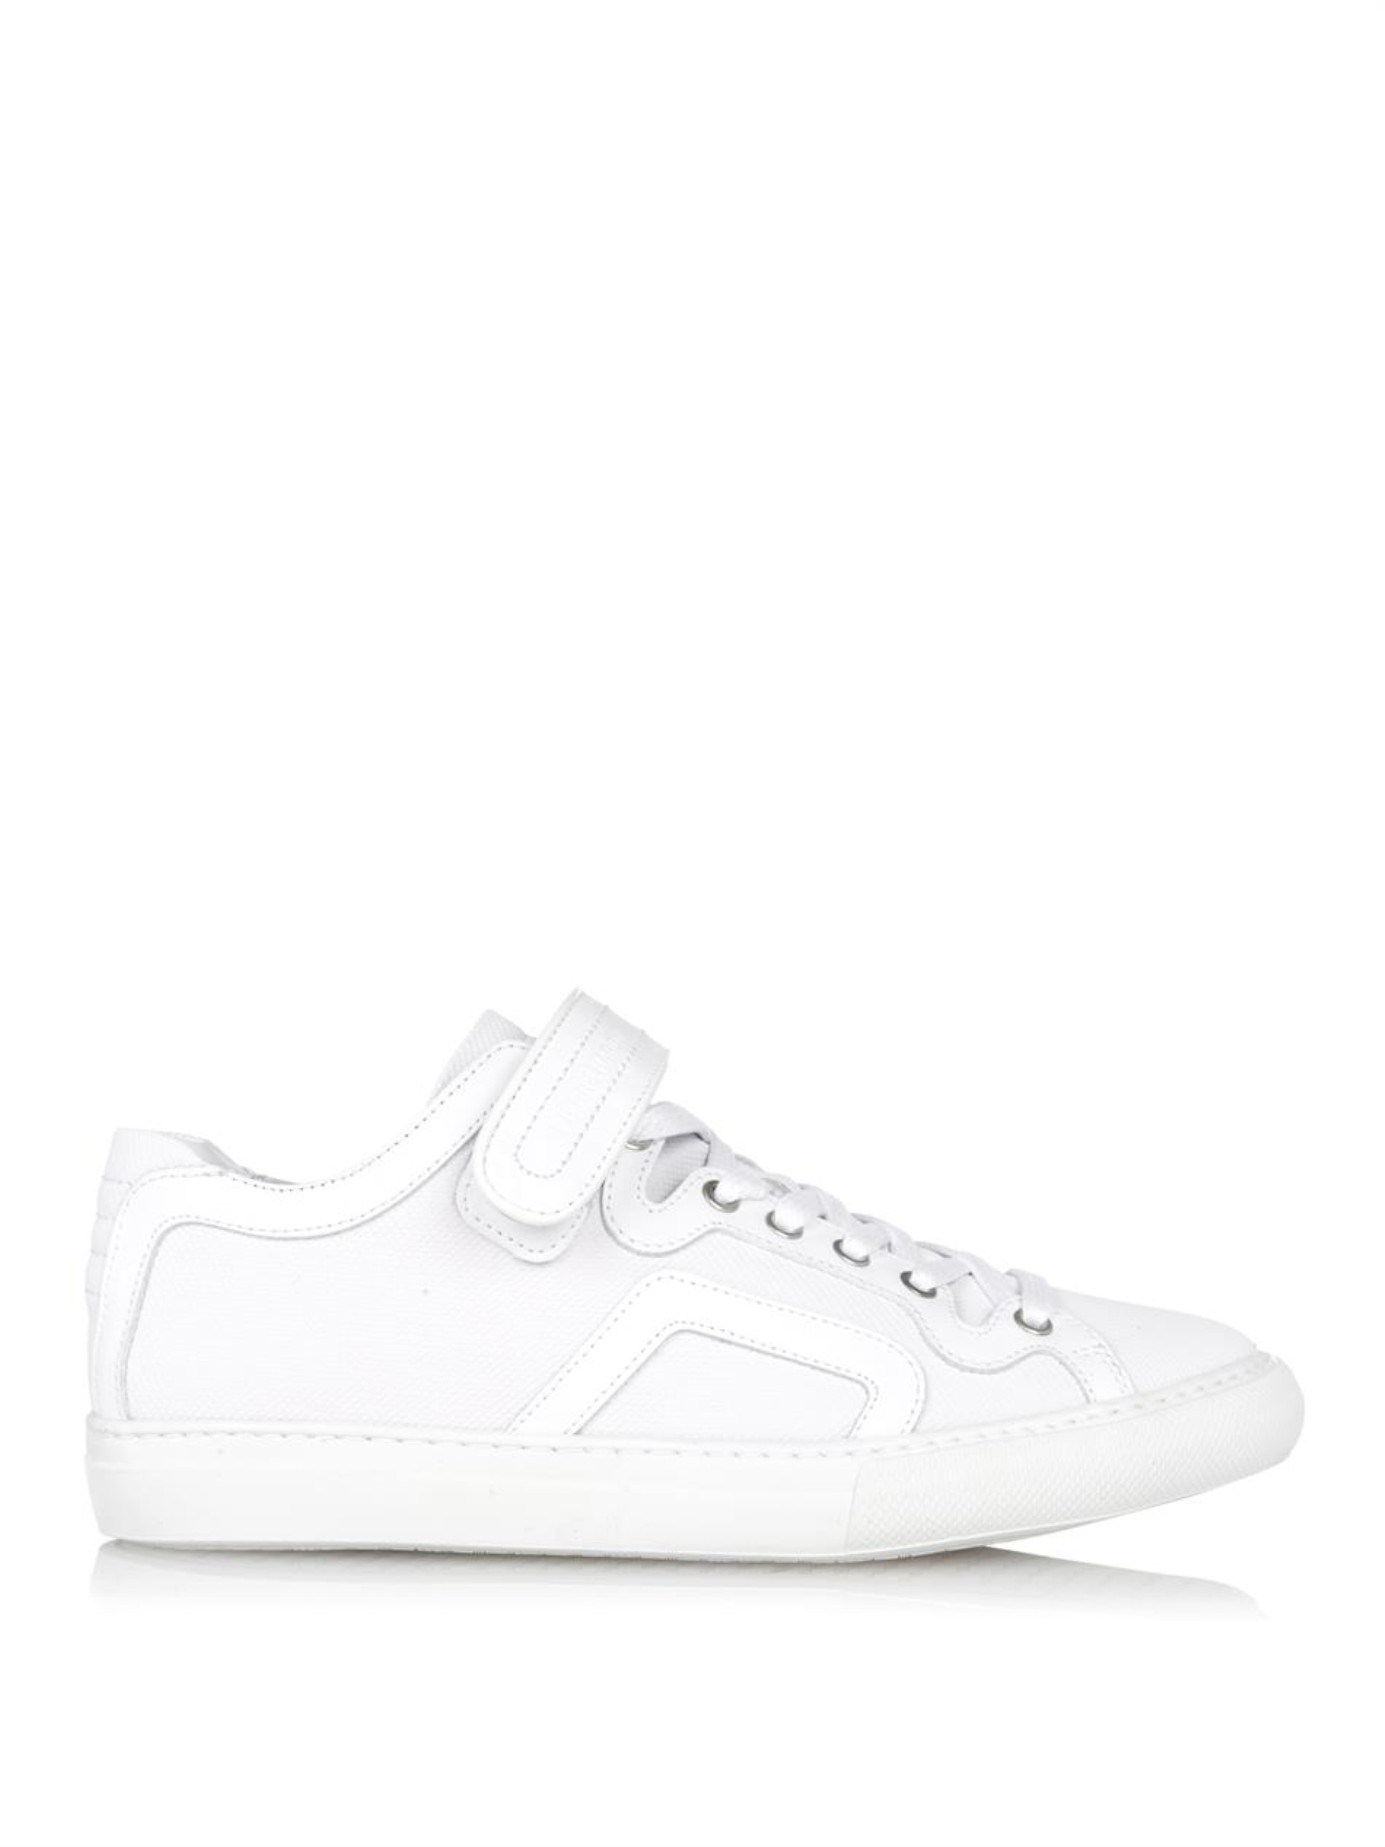 White Strap Sneakers Pierre Hardy Cheap Sale New Styles 5A6BF3